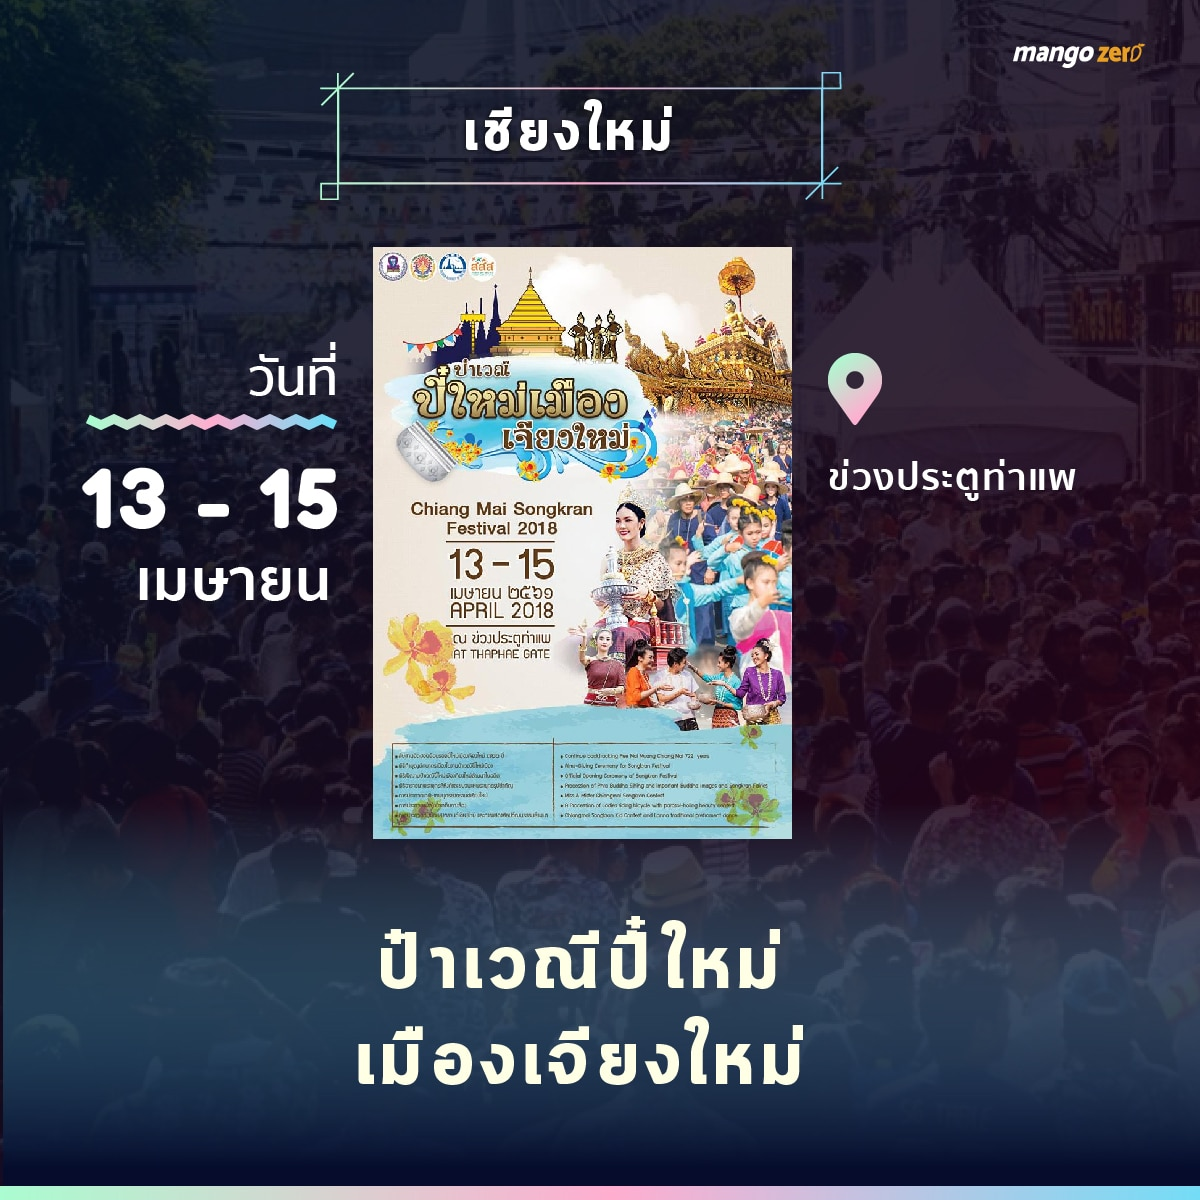 songkran-2018-events-thailand-05